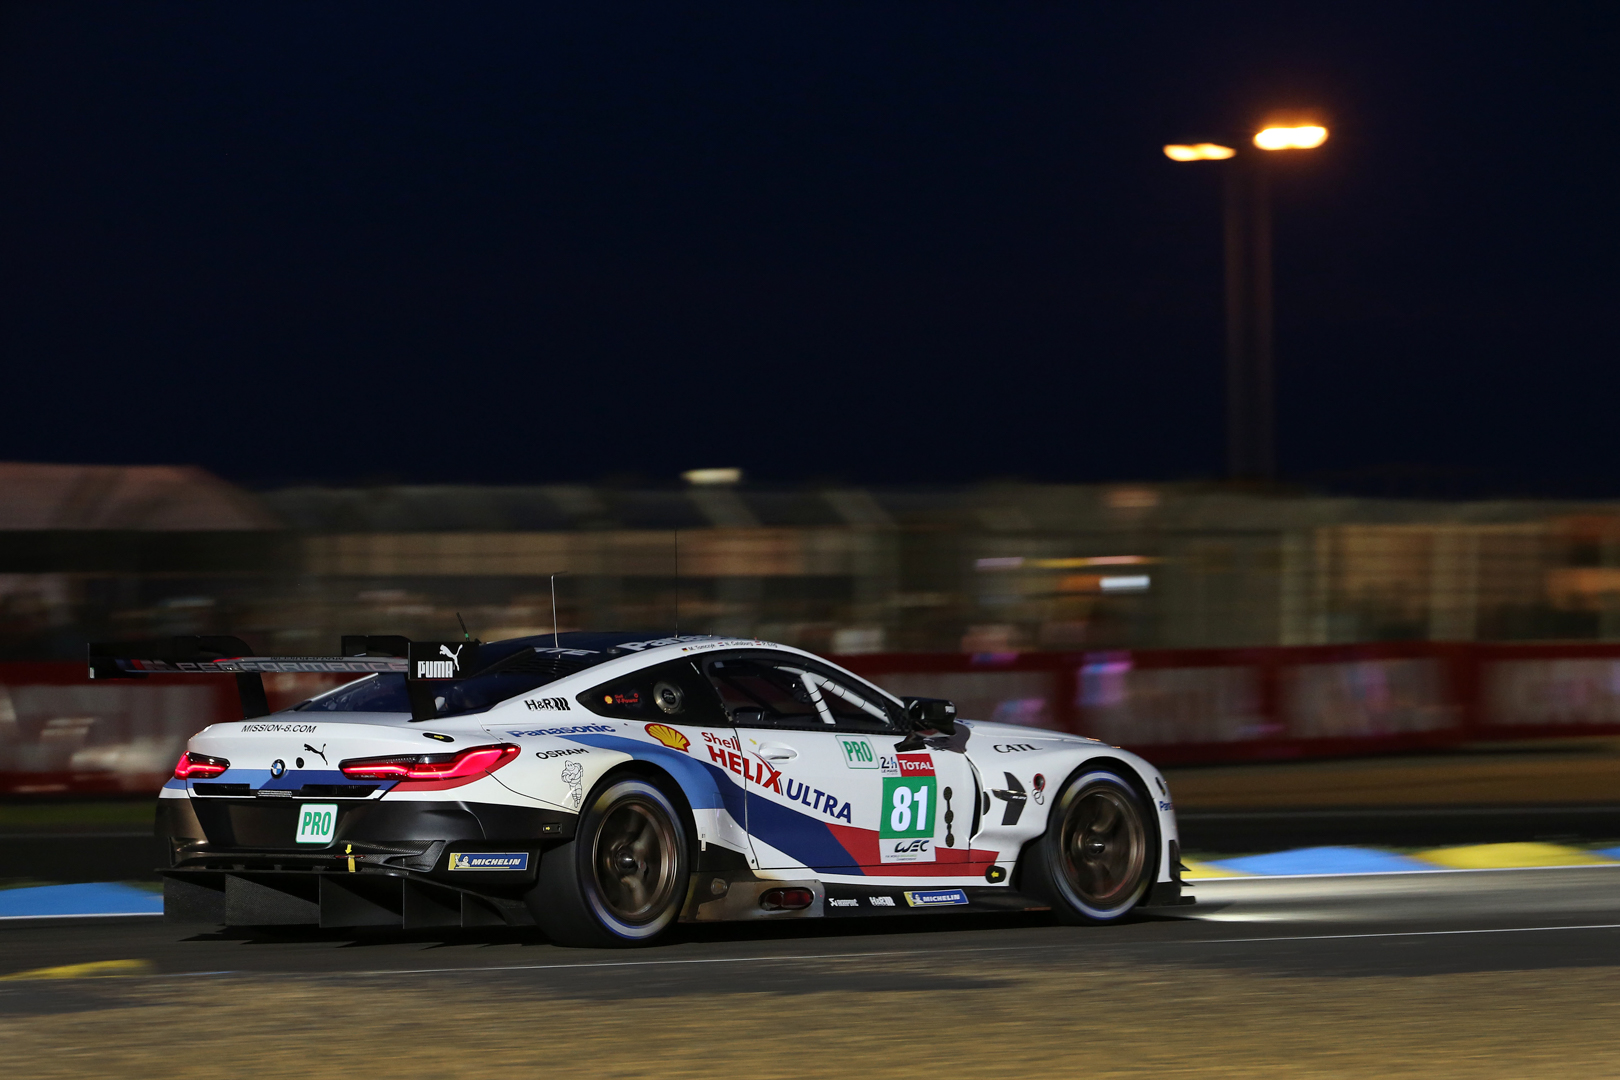 bmw m8 gte to start 24 hour race from 12th and 13th place at le mans debut. Black Bedroom Furniture Sets. Home Design Ideas